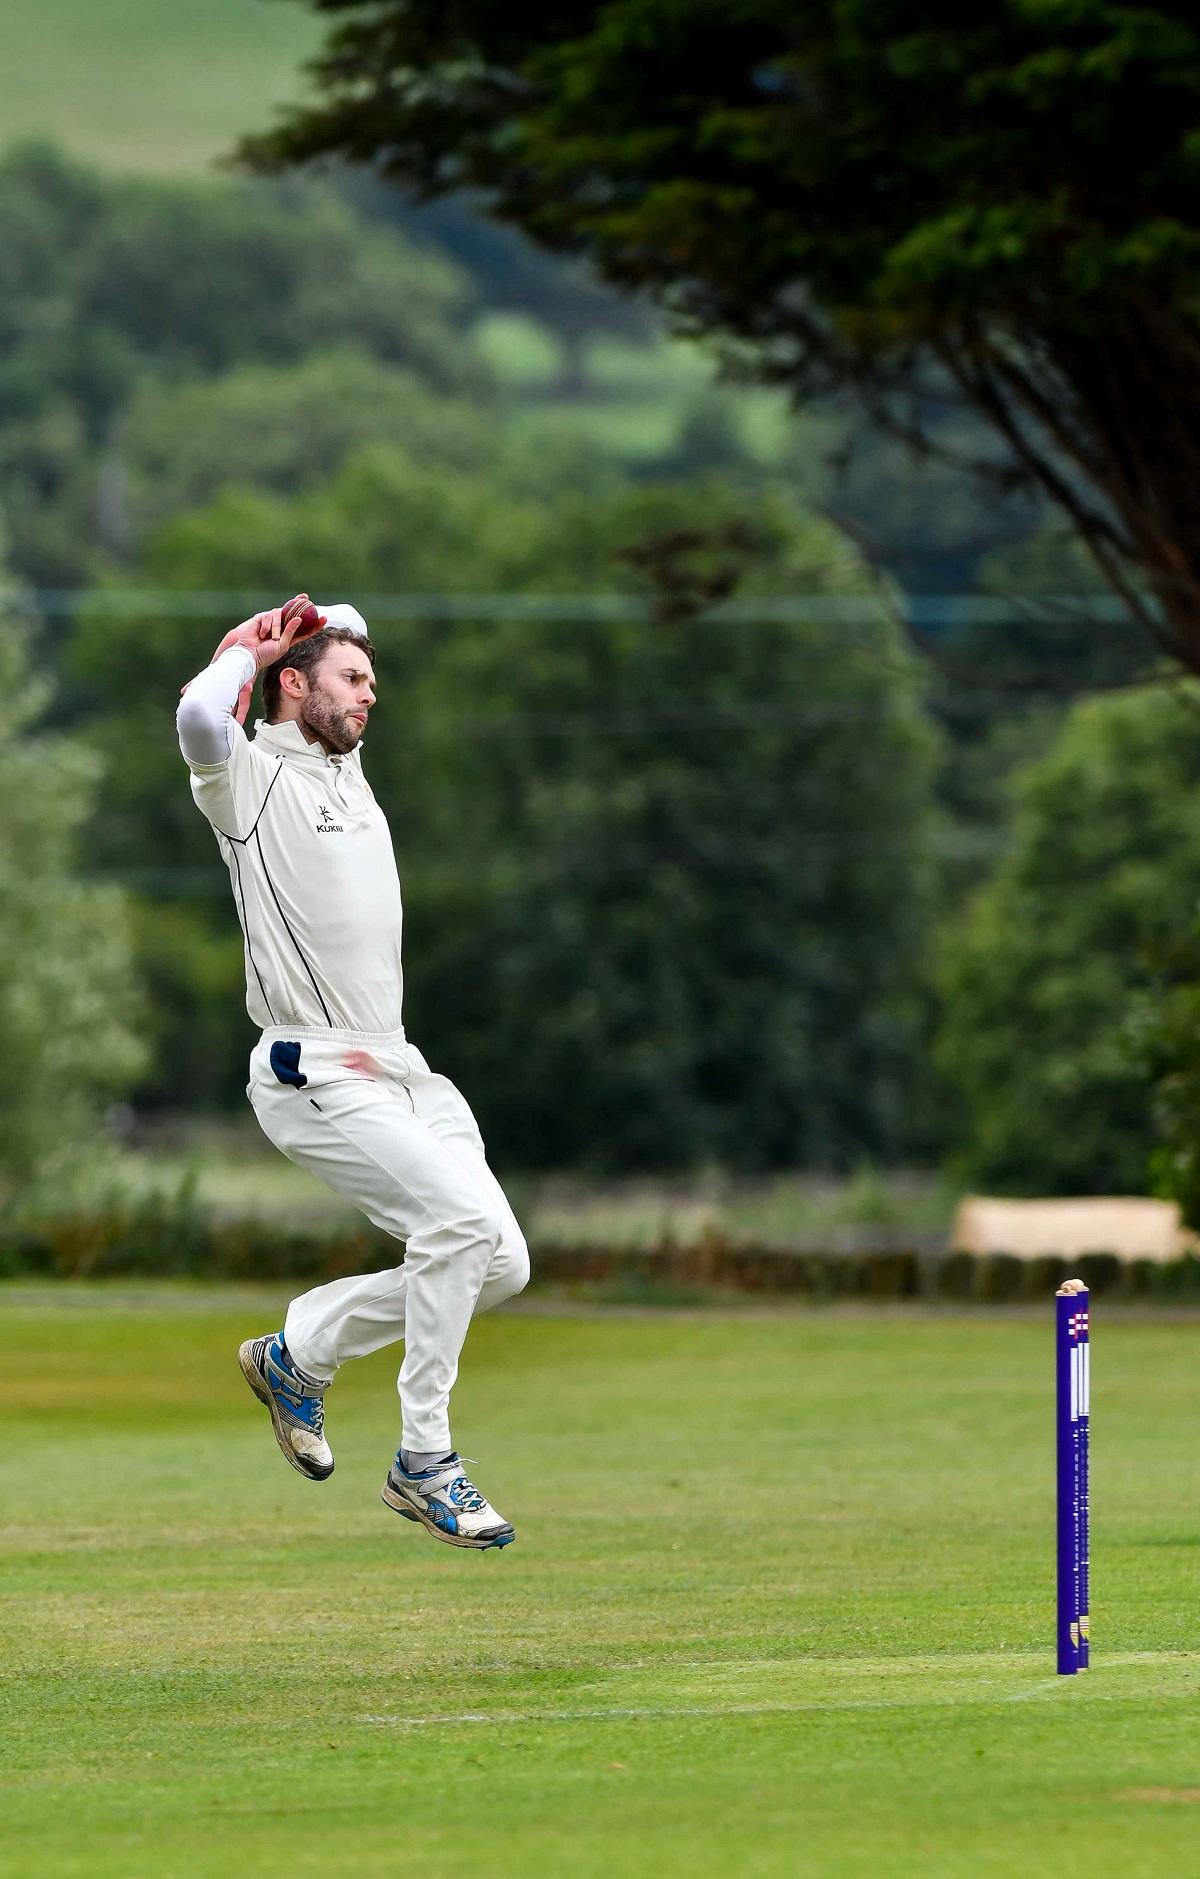 Paul Hardwick took 9-19 as Steeton beat Thackley by ten wickets to send them down